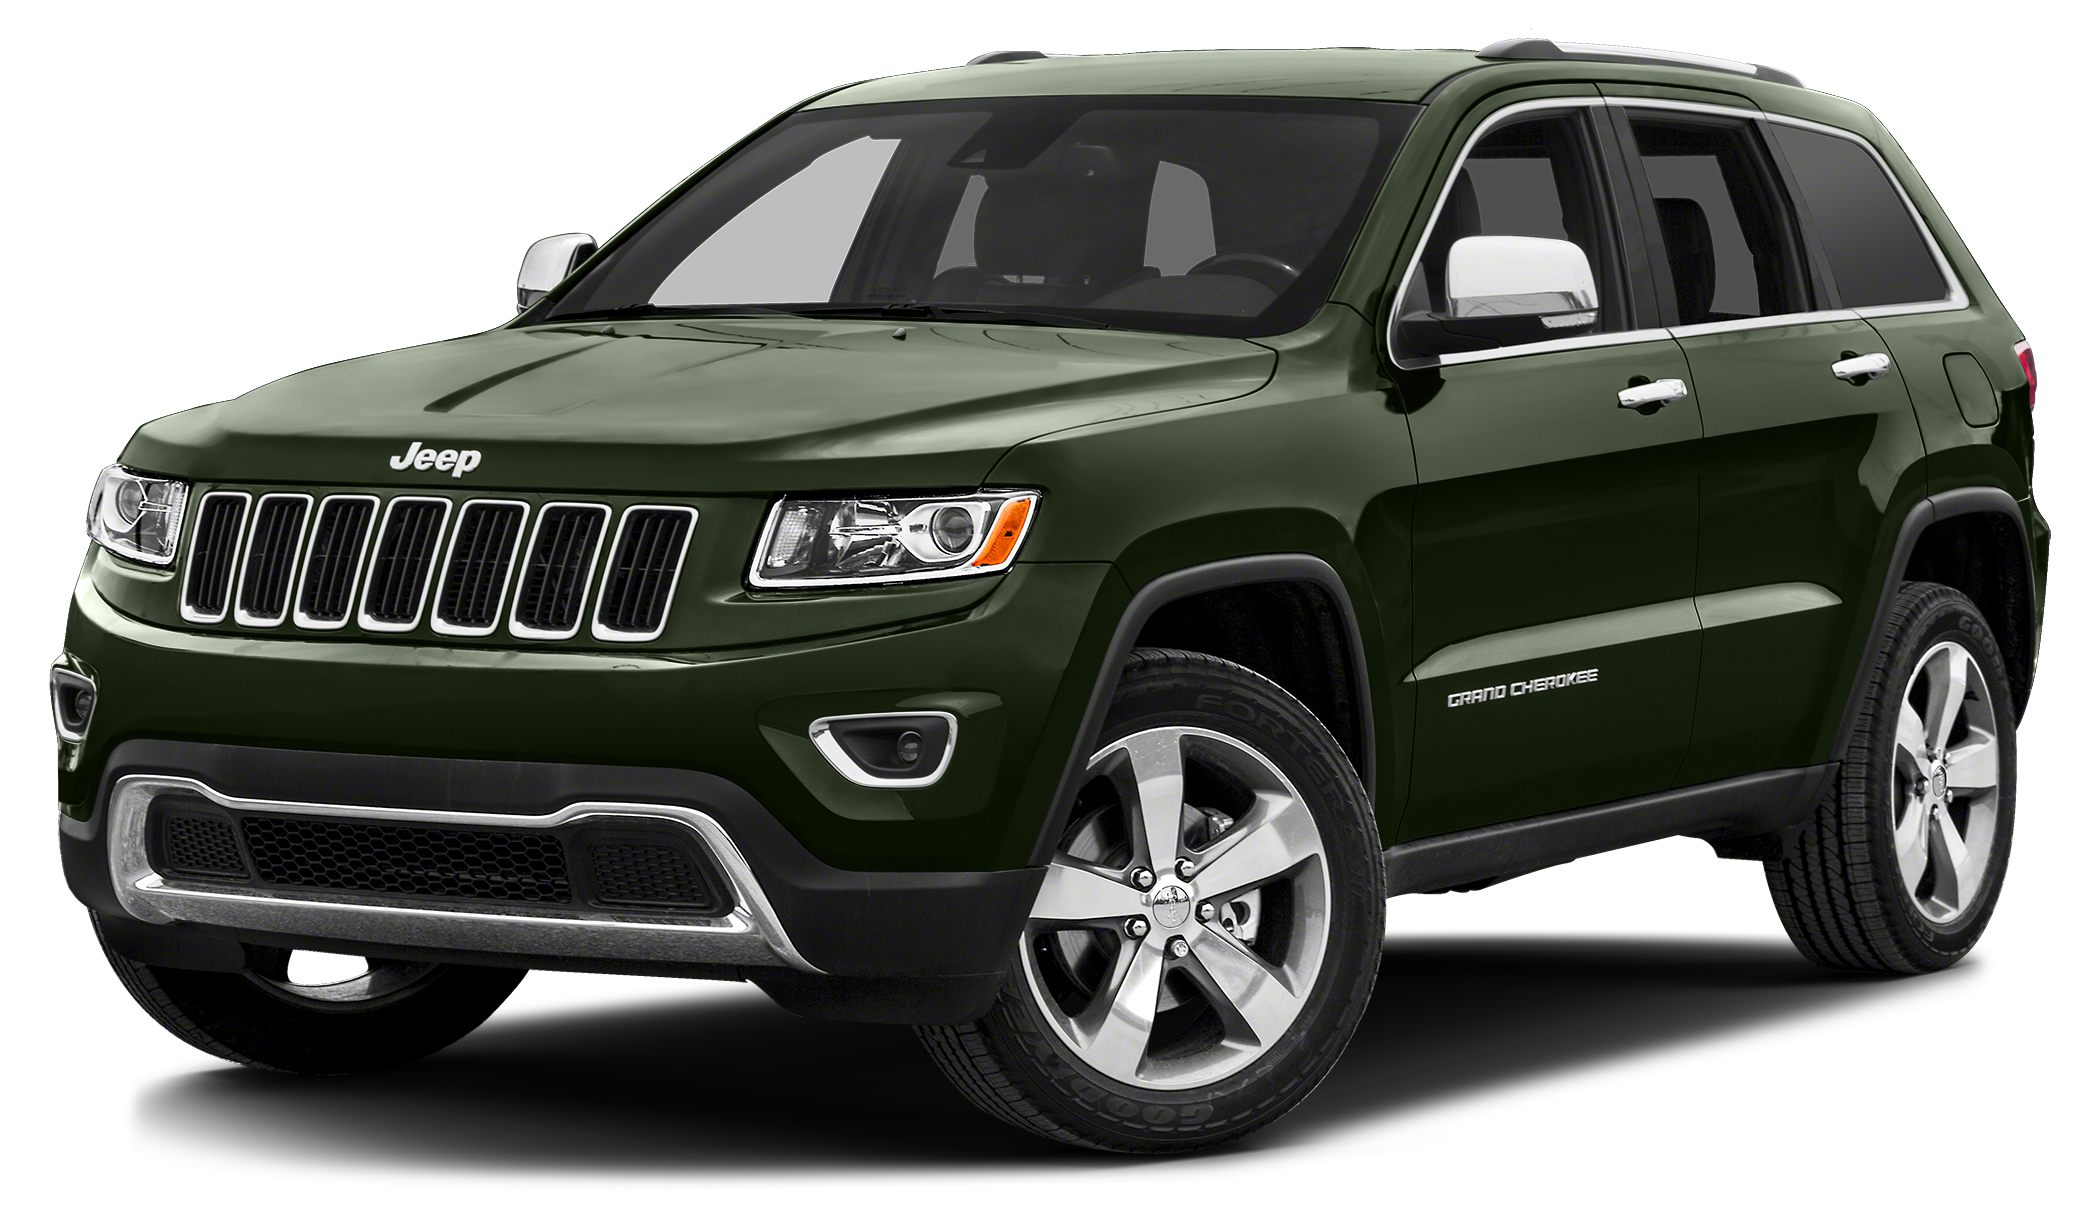 2017 Jeep Grand Cherokee Limited 4WD Green Machine Perfect Color Combination Confused about whi